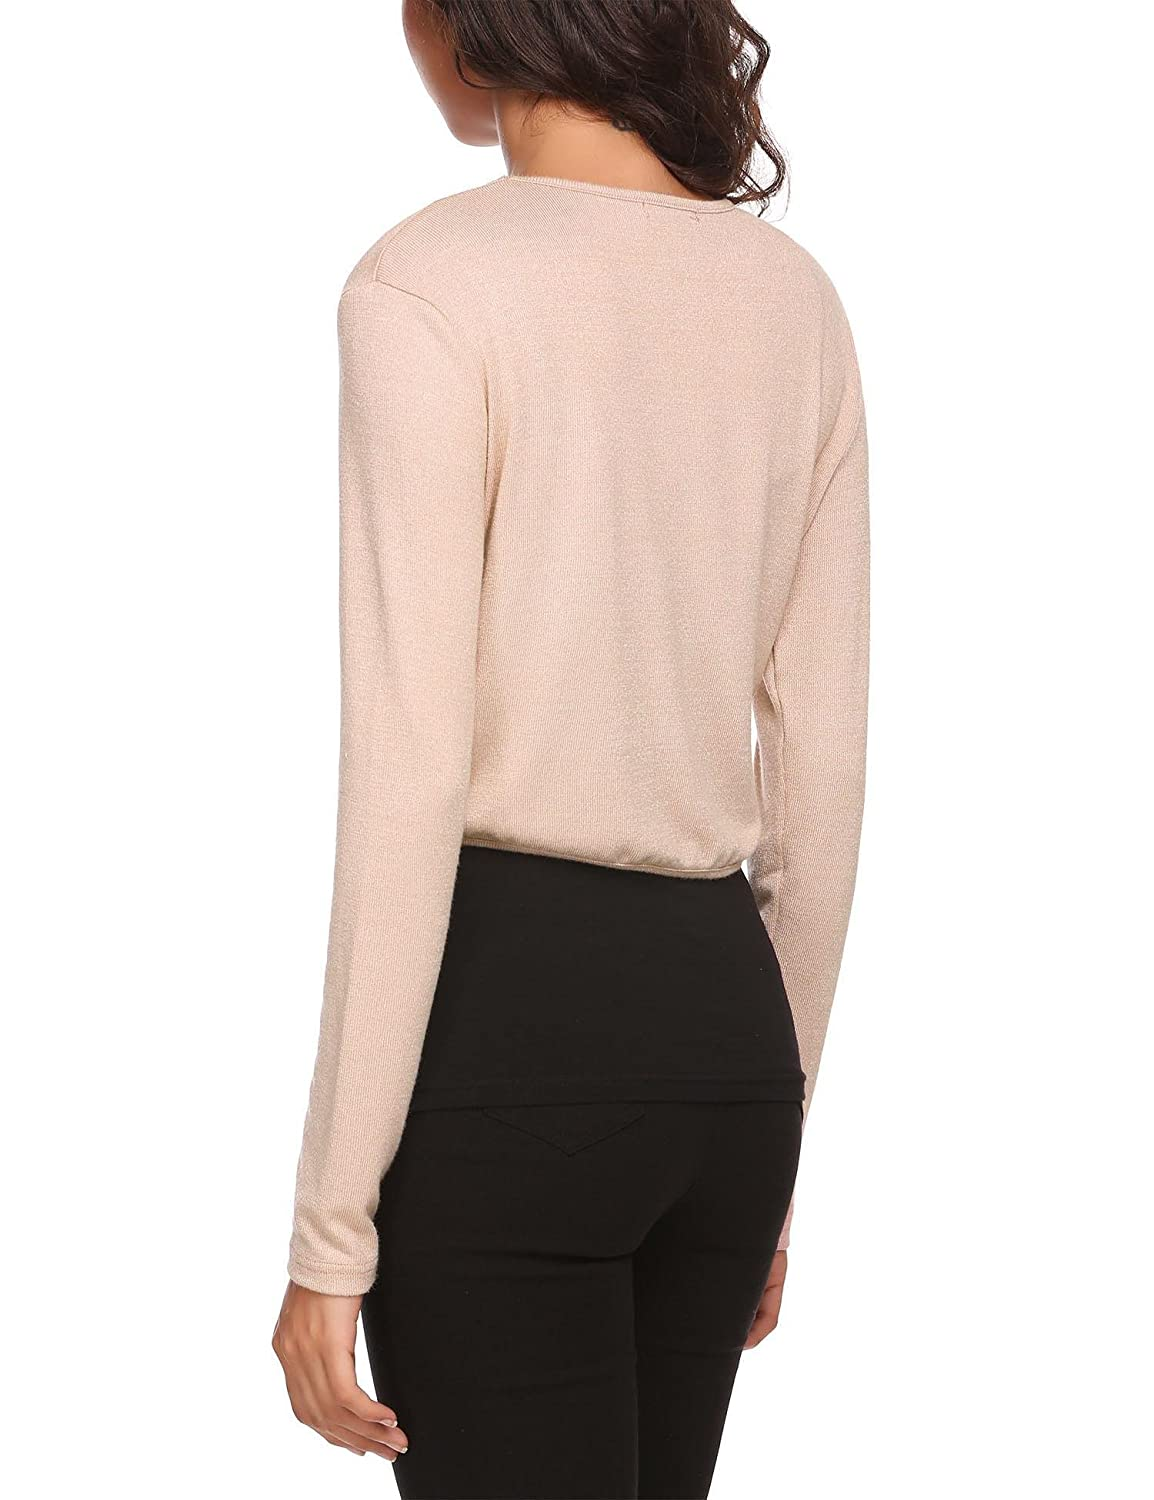 GoodKE HOTOUCH Women Knitted Long Sleeve Solid Open Front Bolero Shrug Top Shrugs Apricot